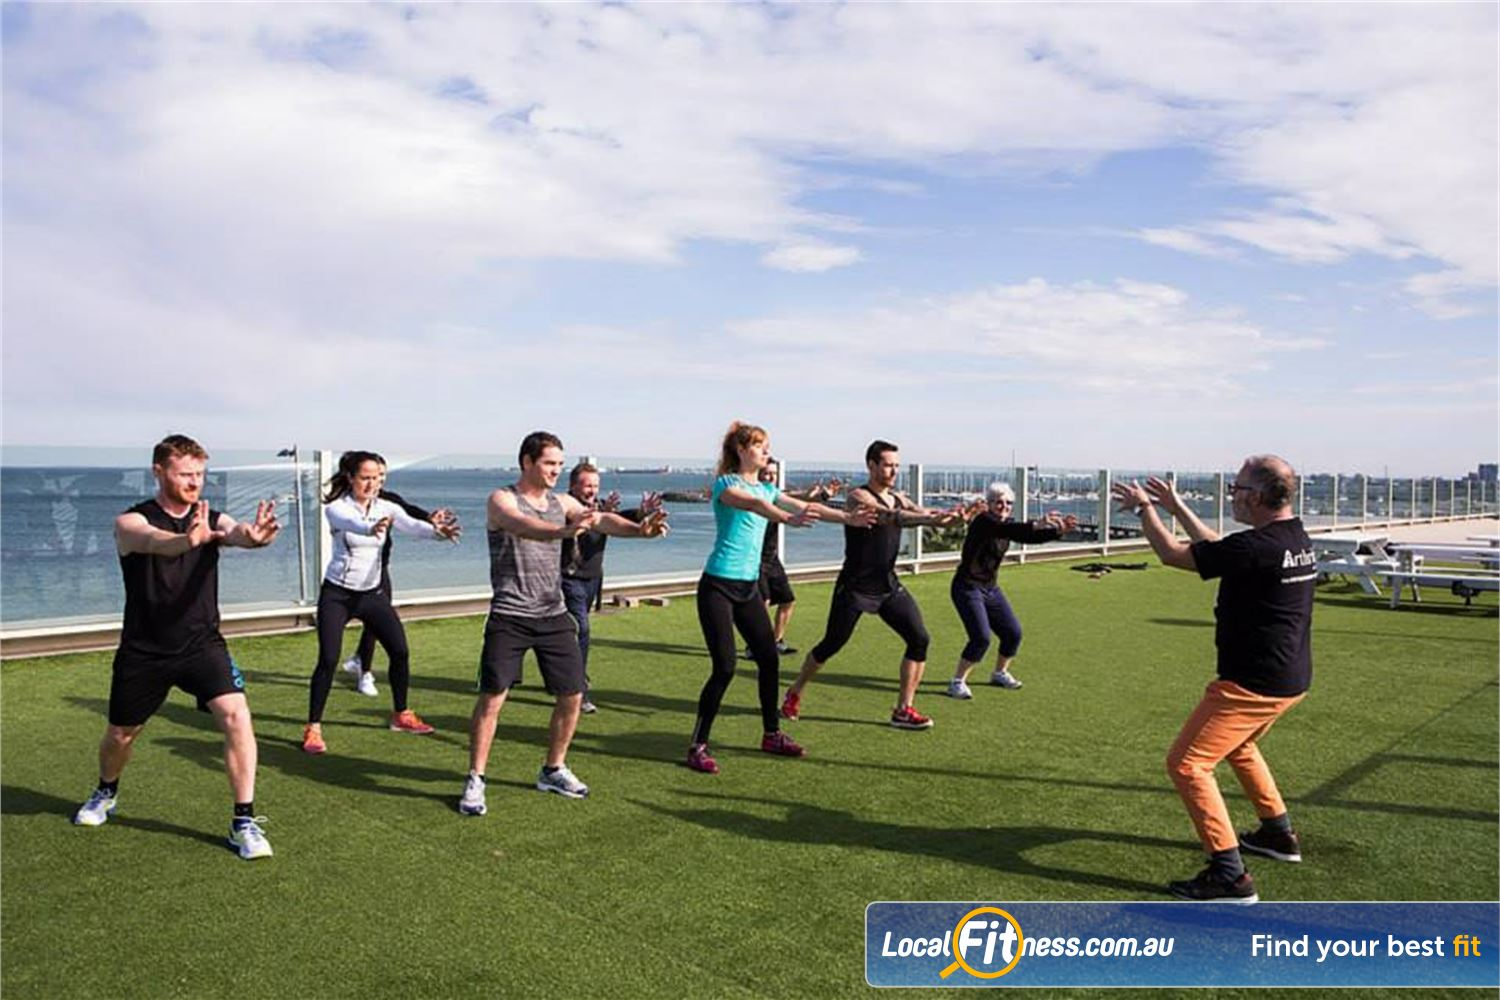 South Pacific Health Clubs Near St Kilda East Take advantage of the beautiful scenery and air with St Kilda outdoor training.